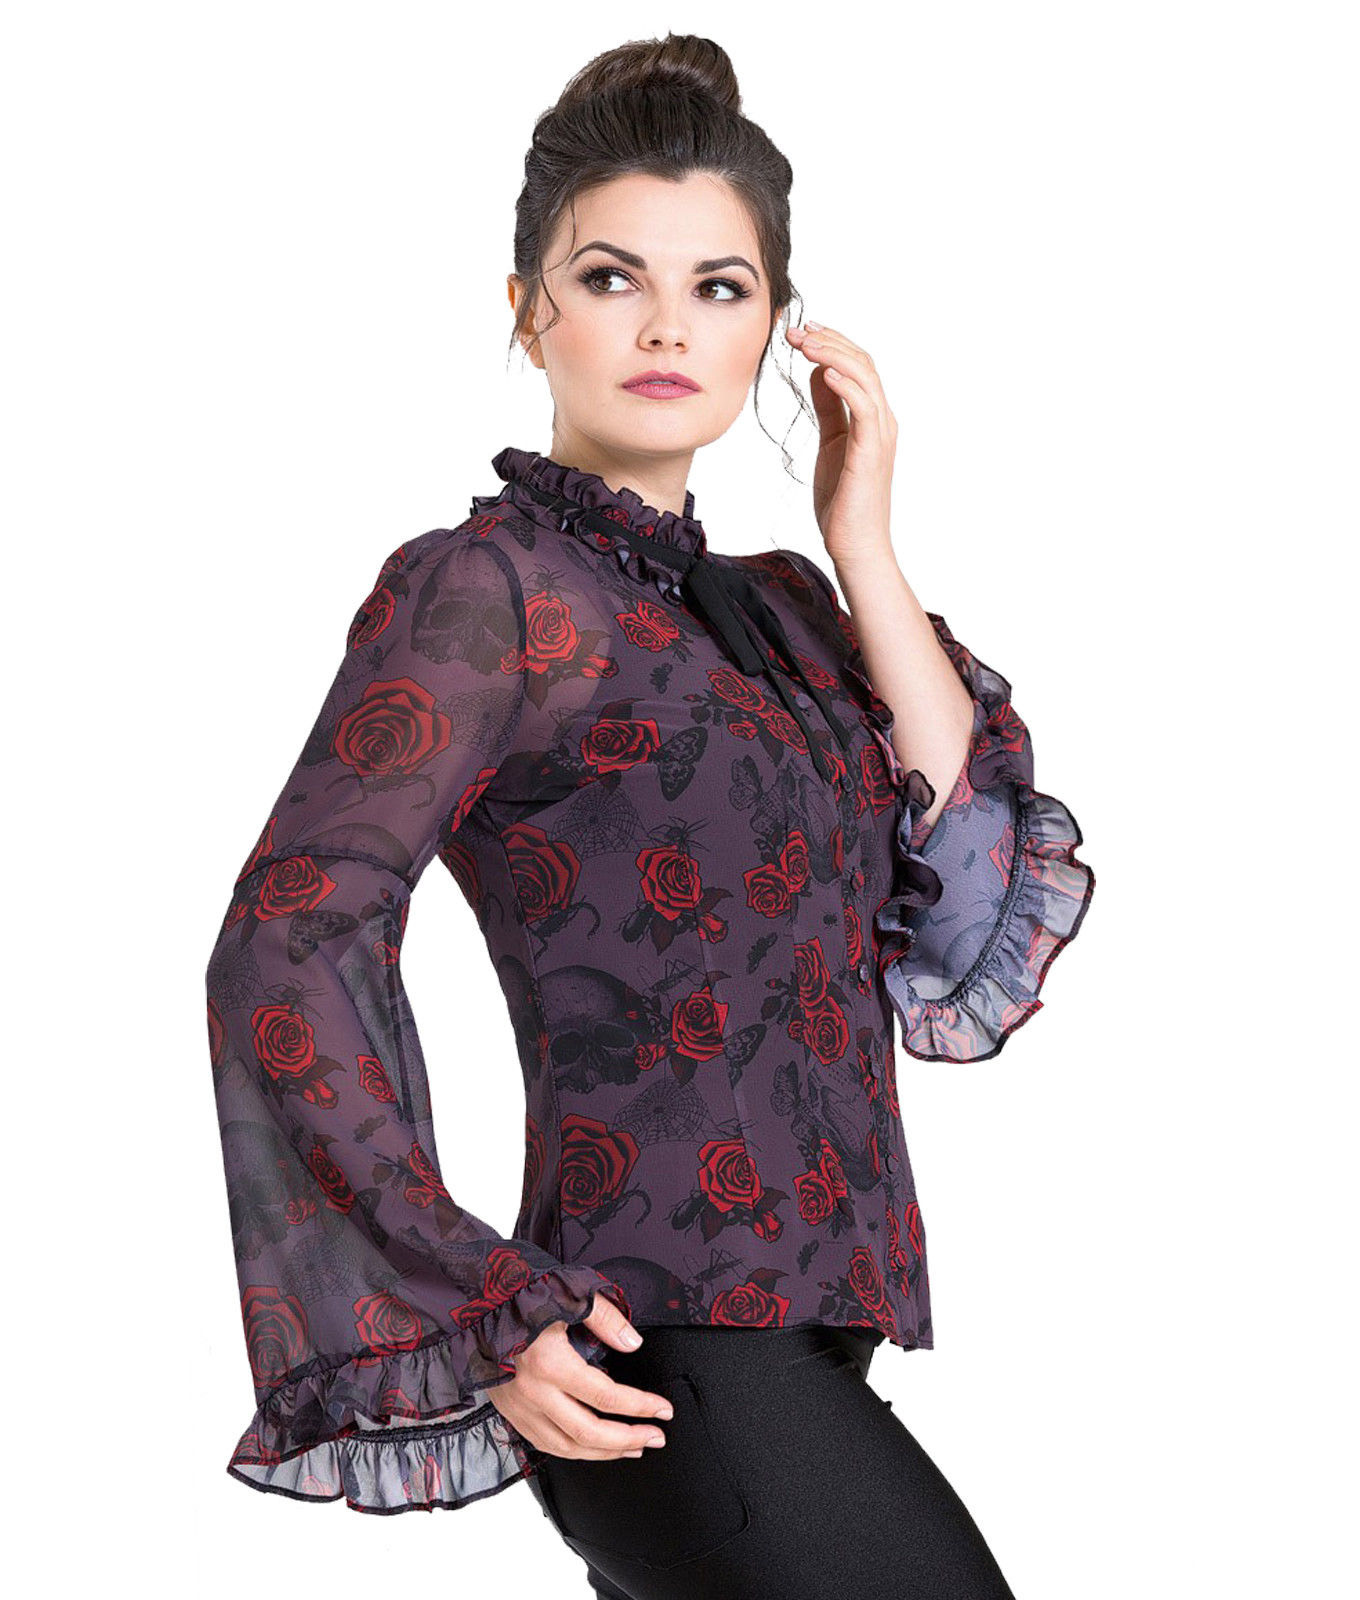 Hell-Bunny-Chiffon-Shirt-Top-Gothic-Floaty-BUGS-amp-ROSES-Purple-Blouse-All-Sizes thumbnail 3